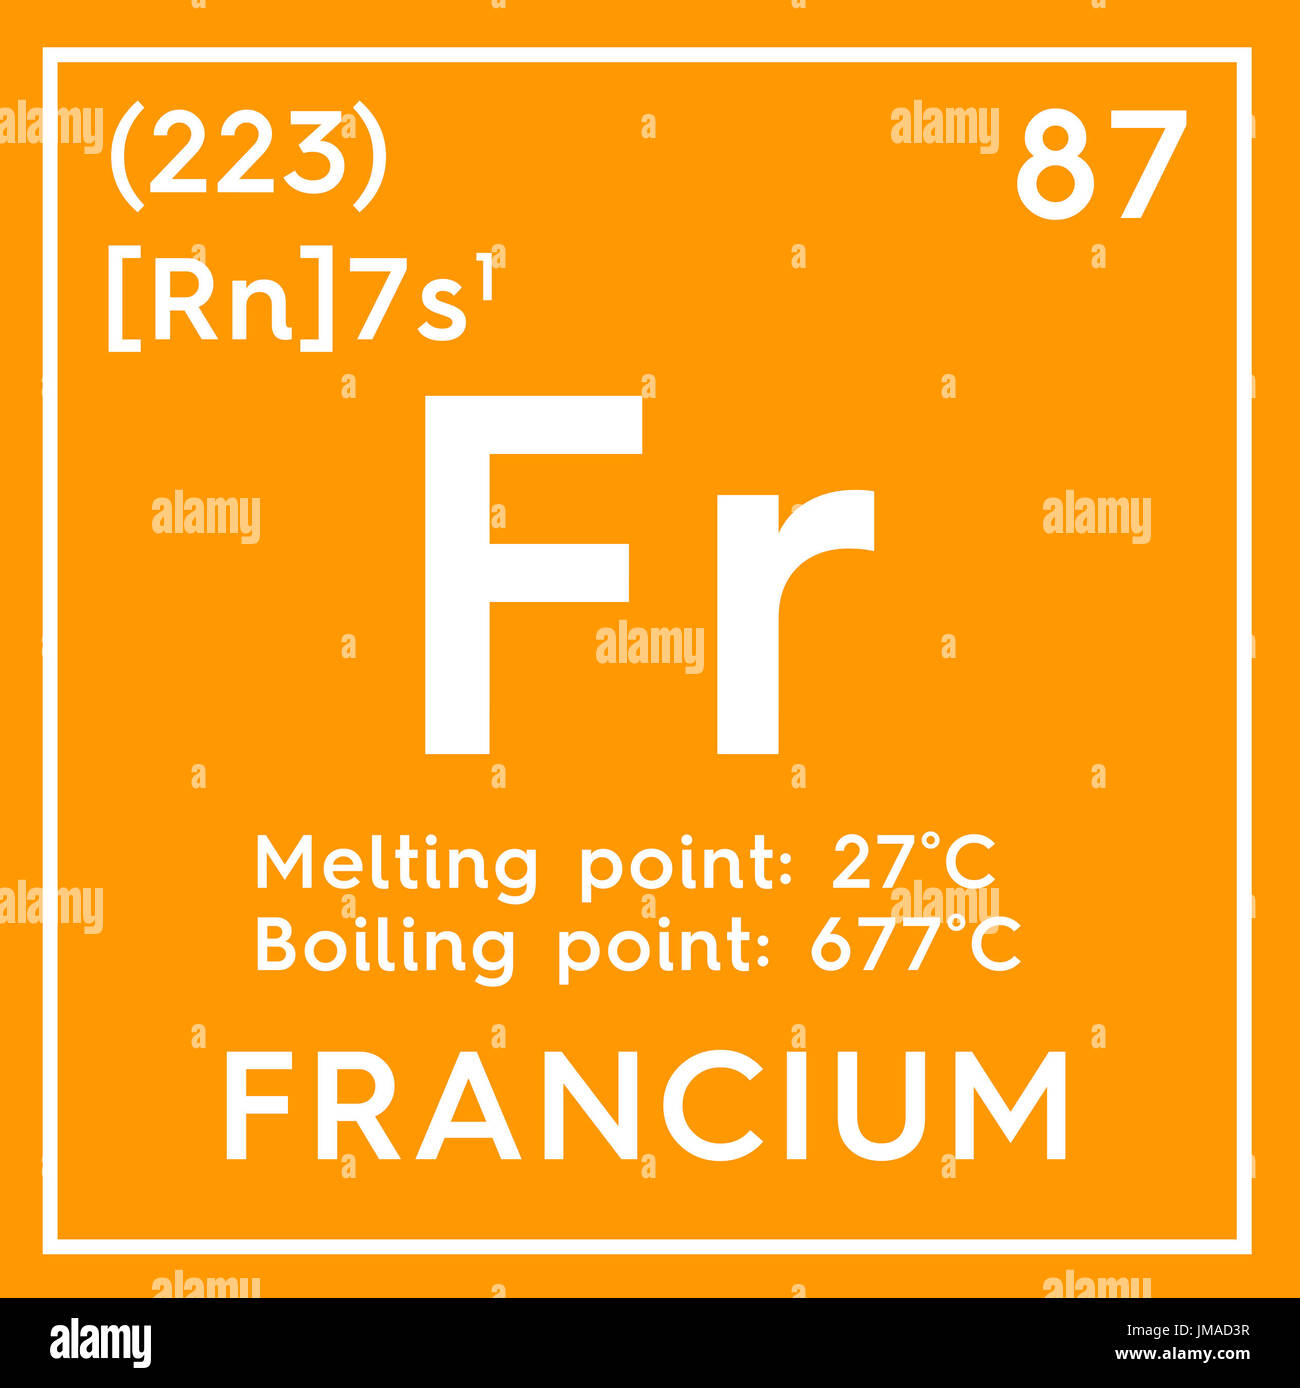 Francium alkali metals chemical element of mendeleevs periodic alkali metals chemical element of mendeleevs periodic table francium in square cube creative concept urtaz Image collections